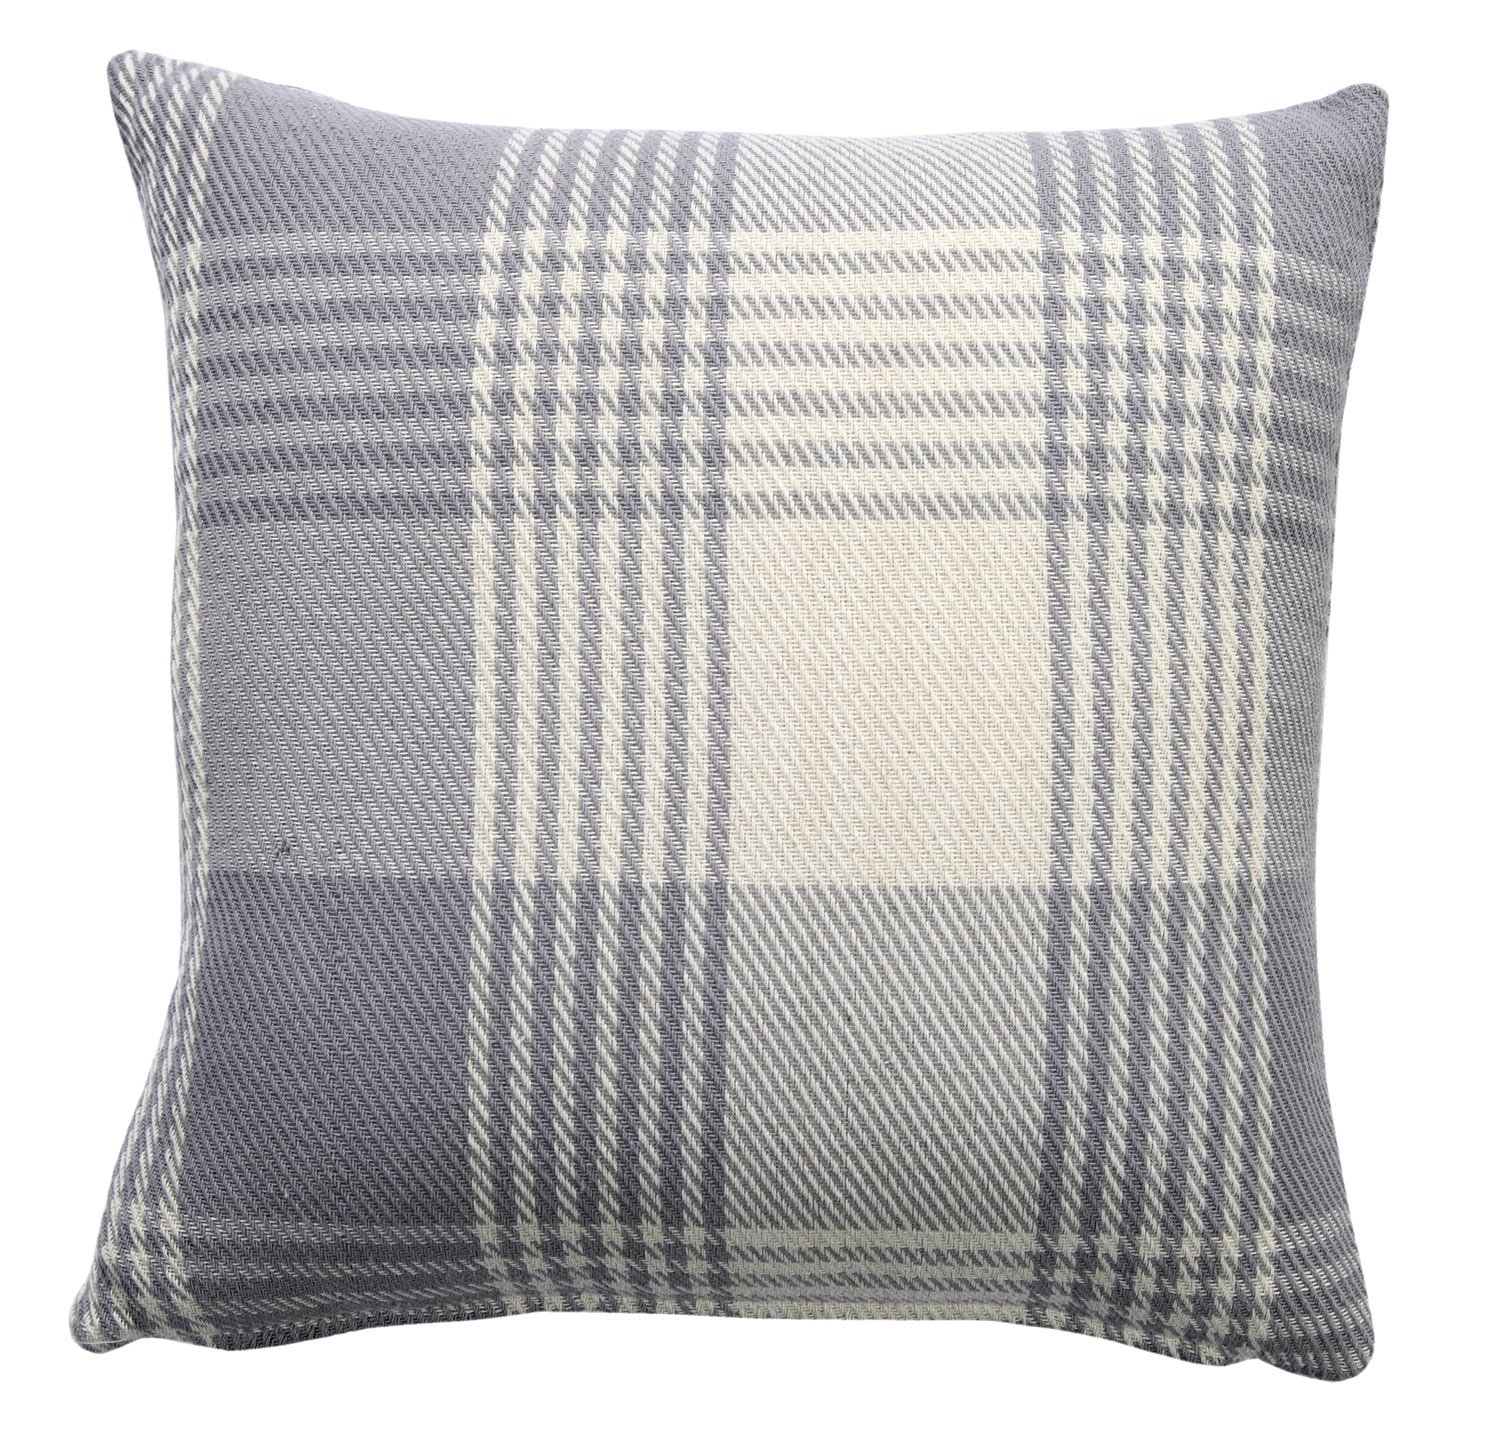 Betty Black Oxford Homeware Jacquard Cushions with Invisible Zipper Square Decoration Throw Pillow Cases Cushion Covers for Sofa matching with Curtains and bedding 18 x 18 Inch